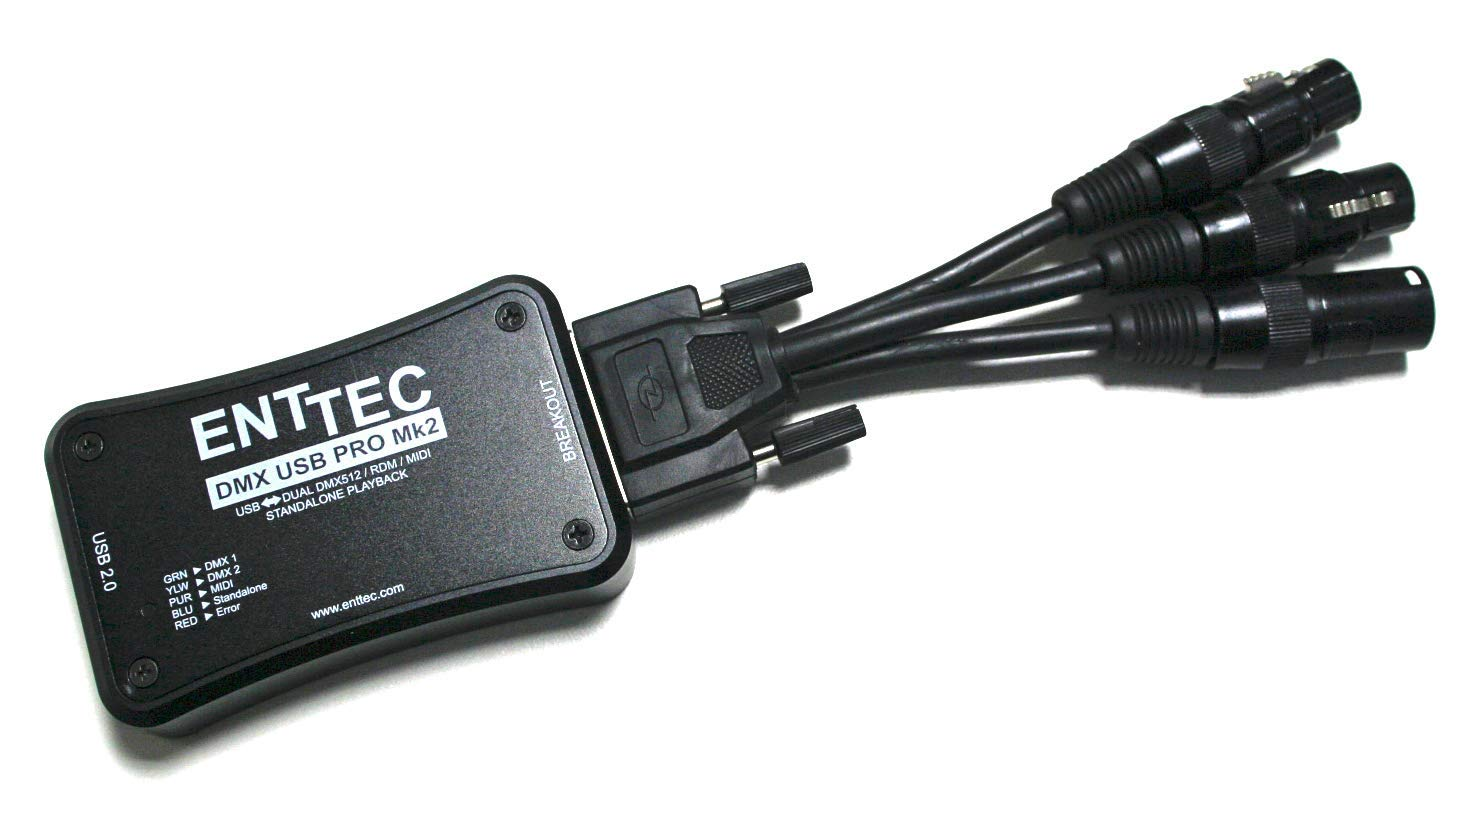 ENTTEC USB WINDOWS 8 DRIVERS DOWNLOAD